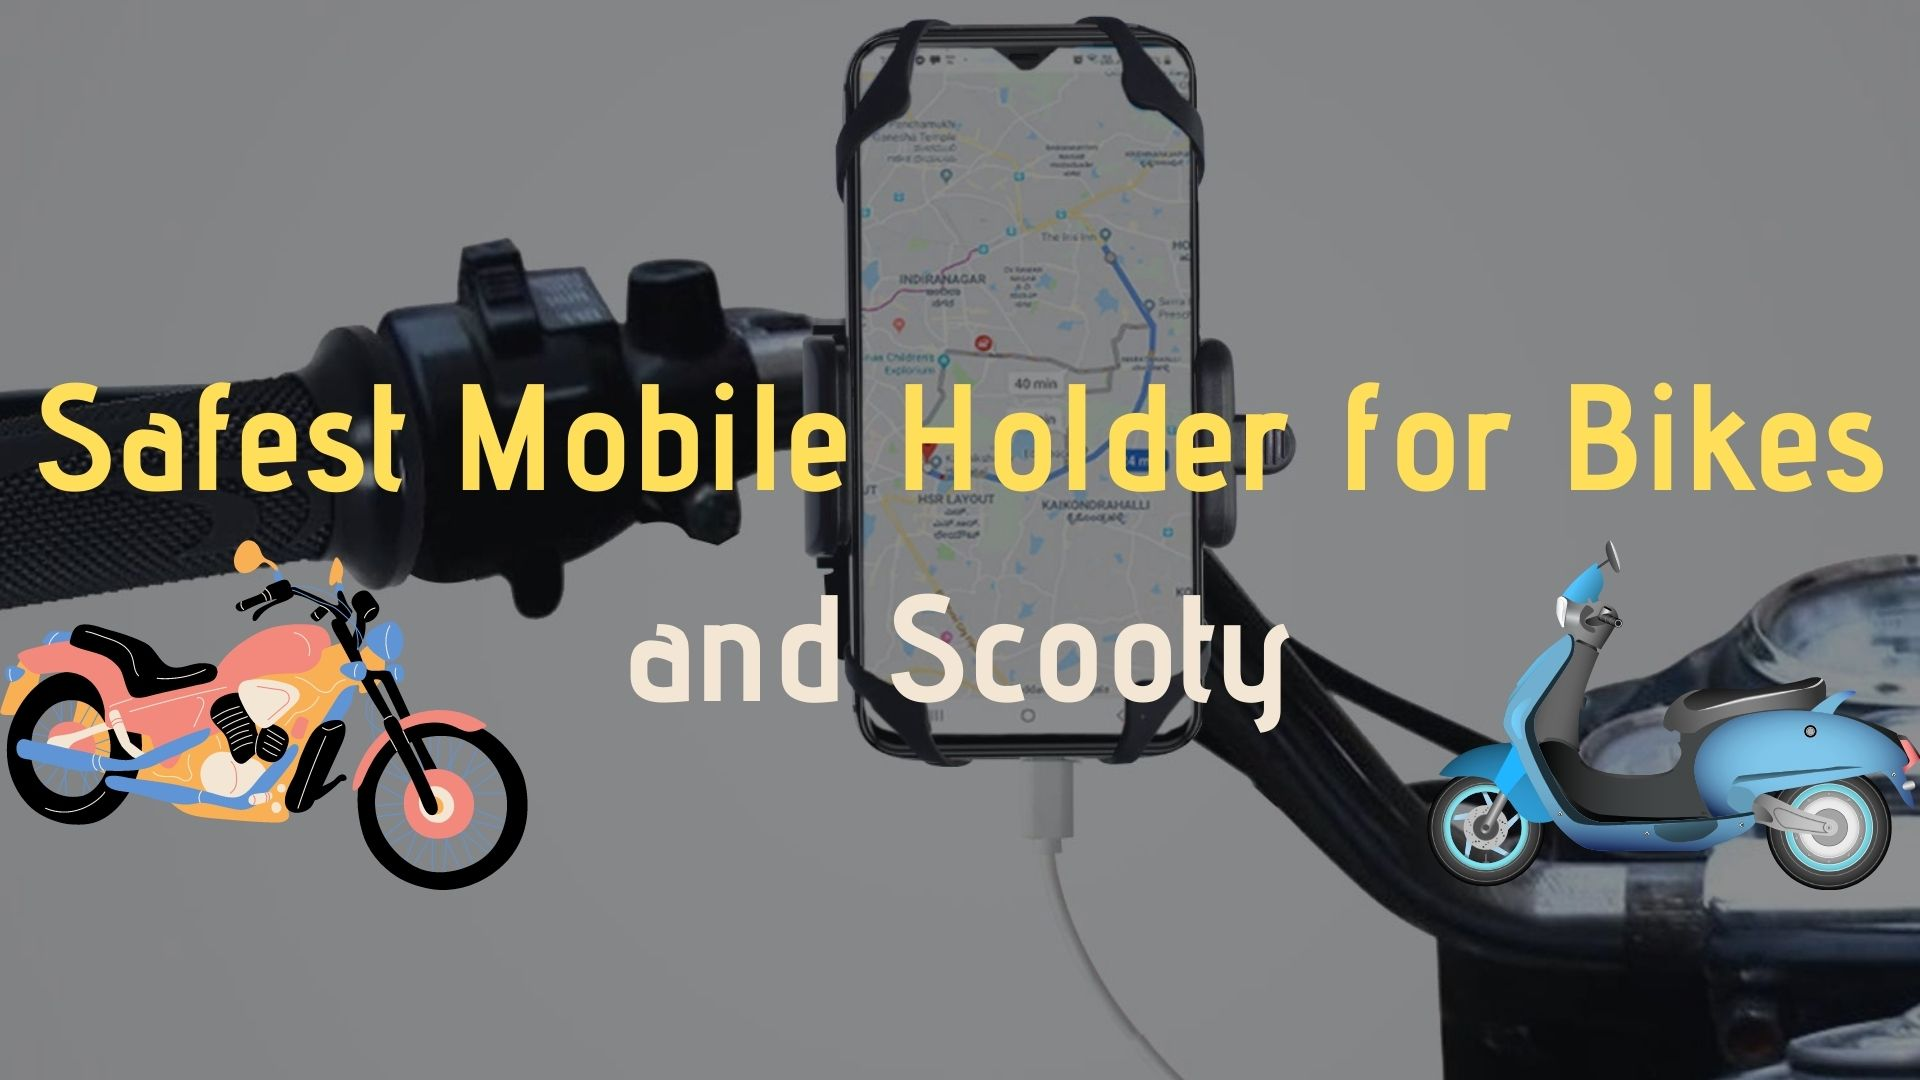 Safest Mobile Holder for Scooty and Bikes